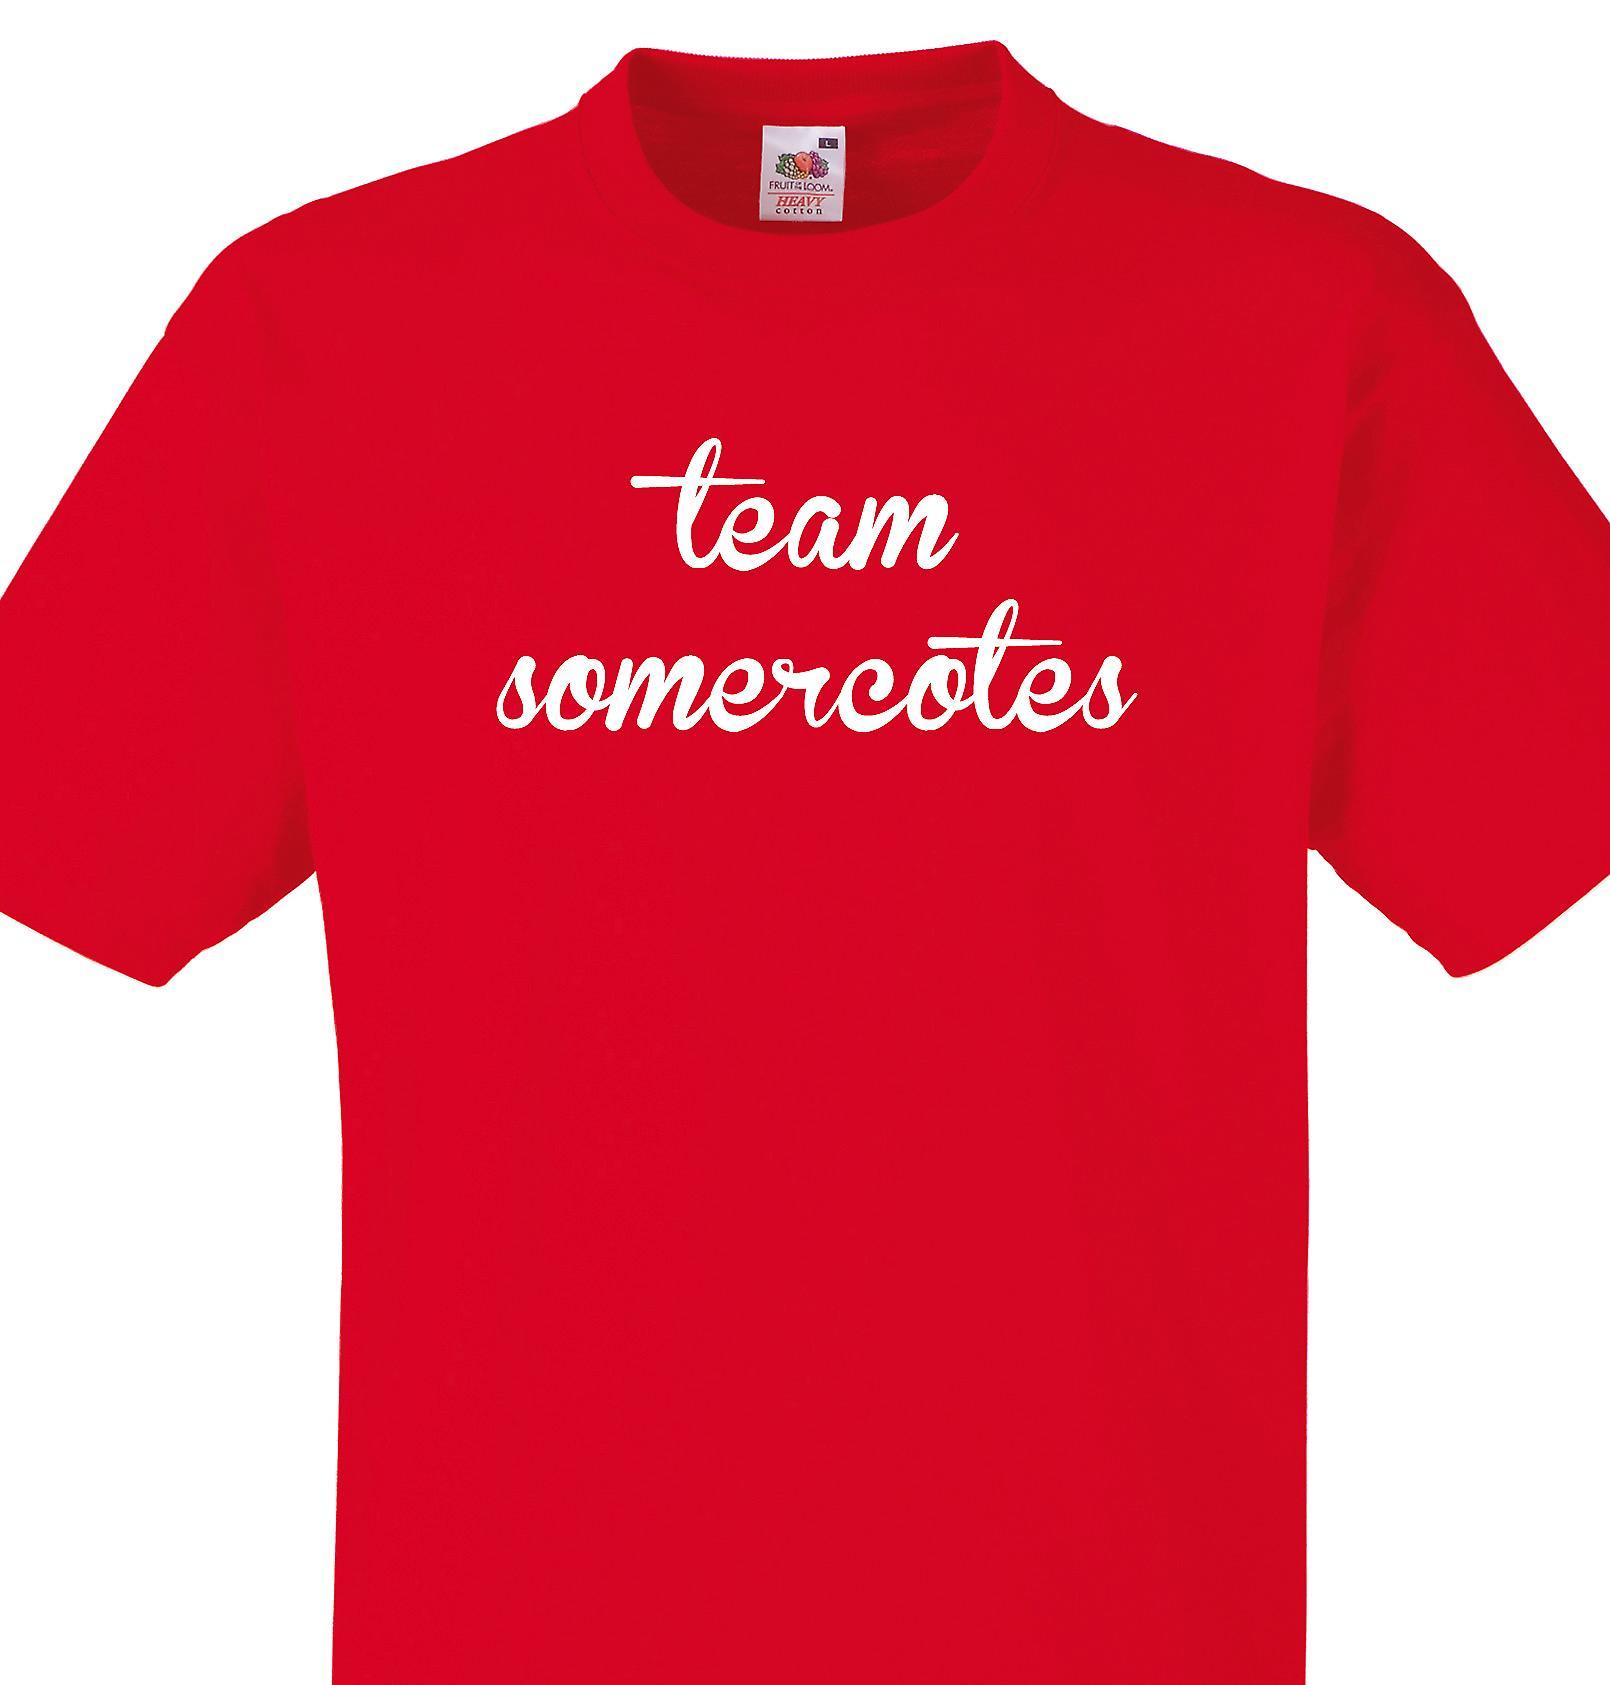 Team Somercotes Red T shirt